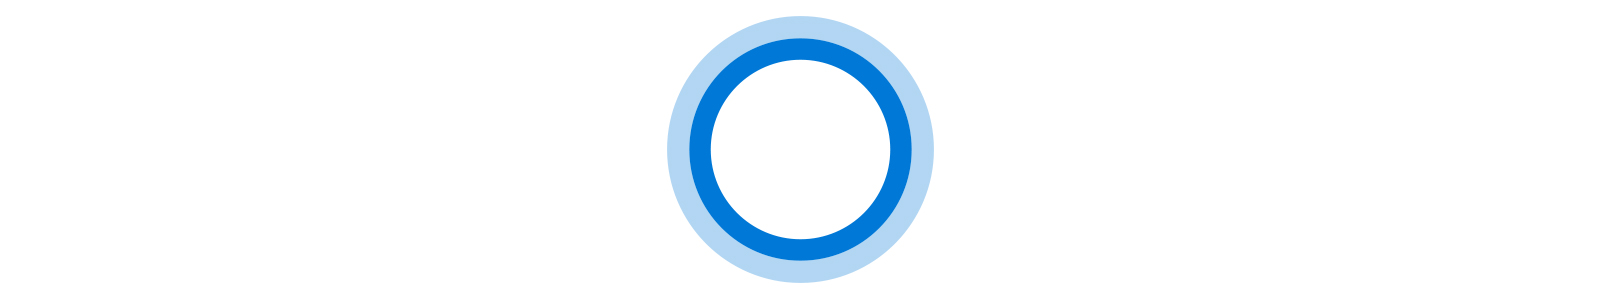 Cortana Animated Icon